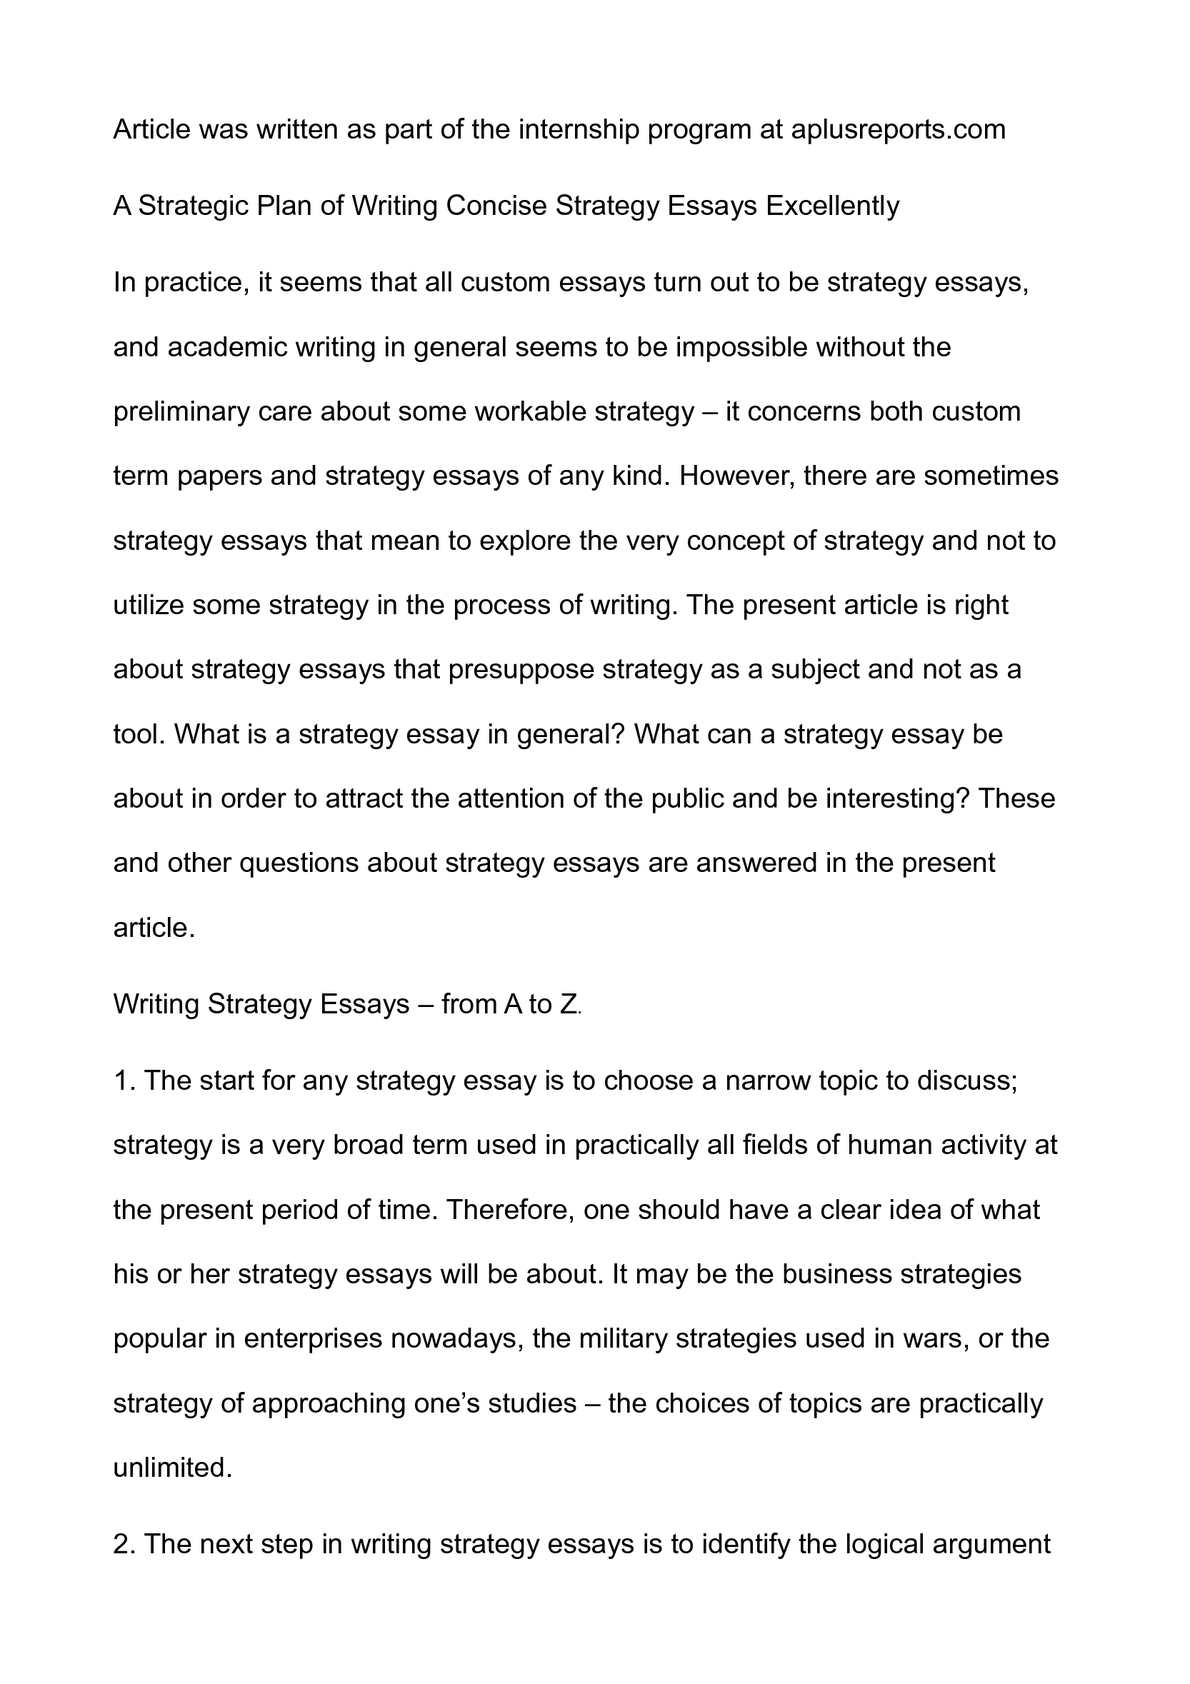 Essay About English Language  How To Write An Essay For High School Students also Thesis Statement For An Essay Calamo  A Strategic Plan Of Writing Concise Strategy  Essays About Health